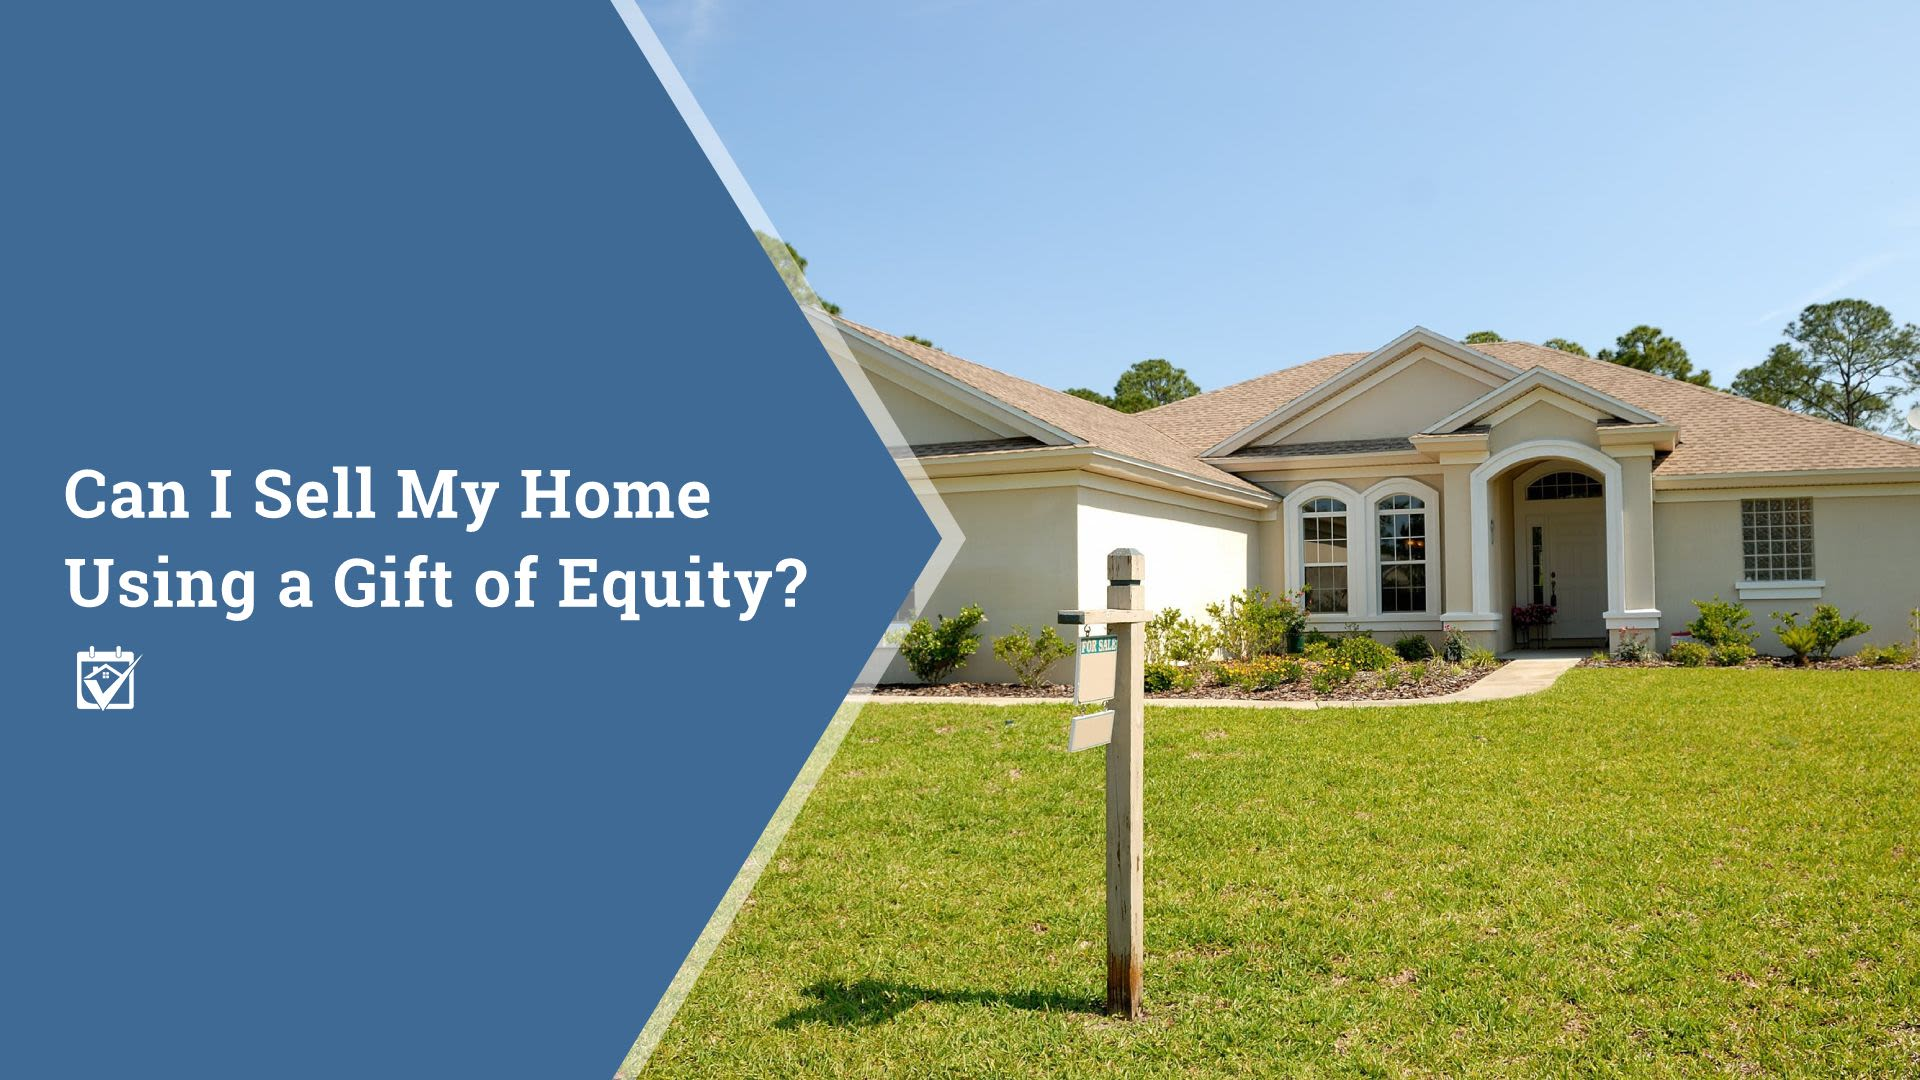 Can I Sell My Home Using a Gift of Equity?